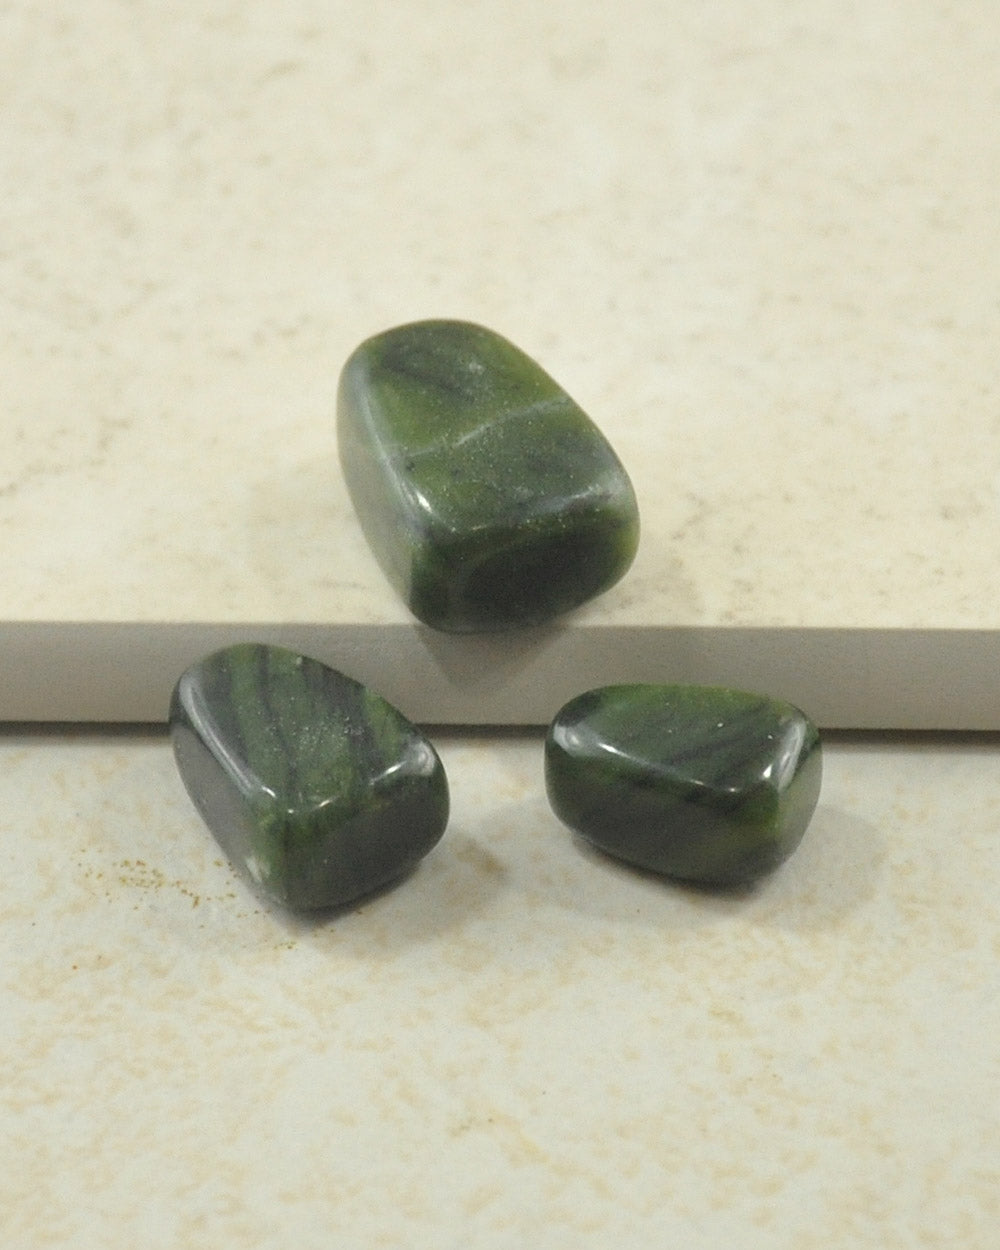 Green Moss Agate Palm Stones - Set of 3